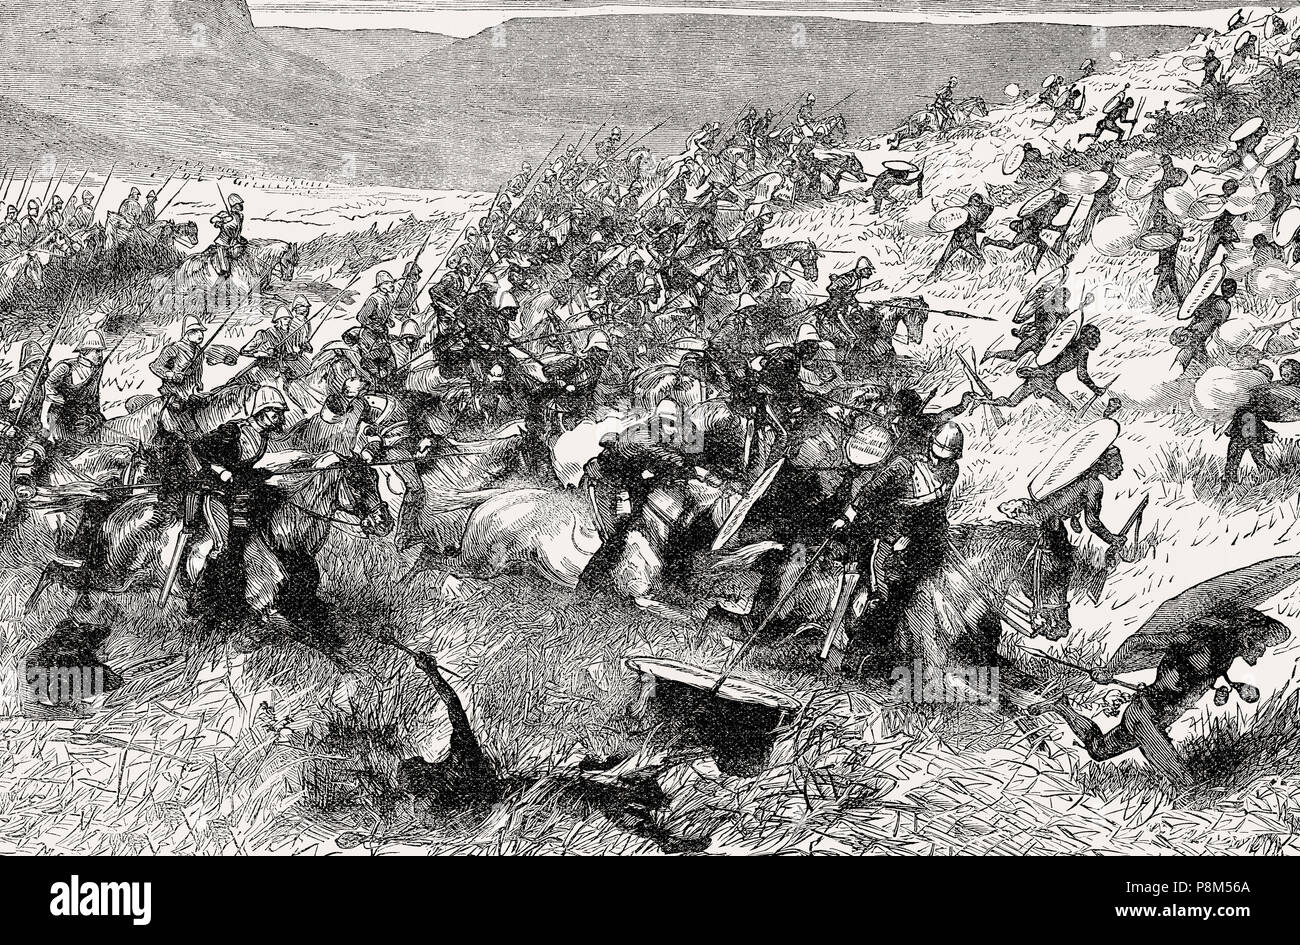 The 17th Lancers at the Battle of Ulundi on 4 July 1879, From British Battles on Land and Sea, by James Grant - Stock Image